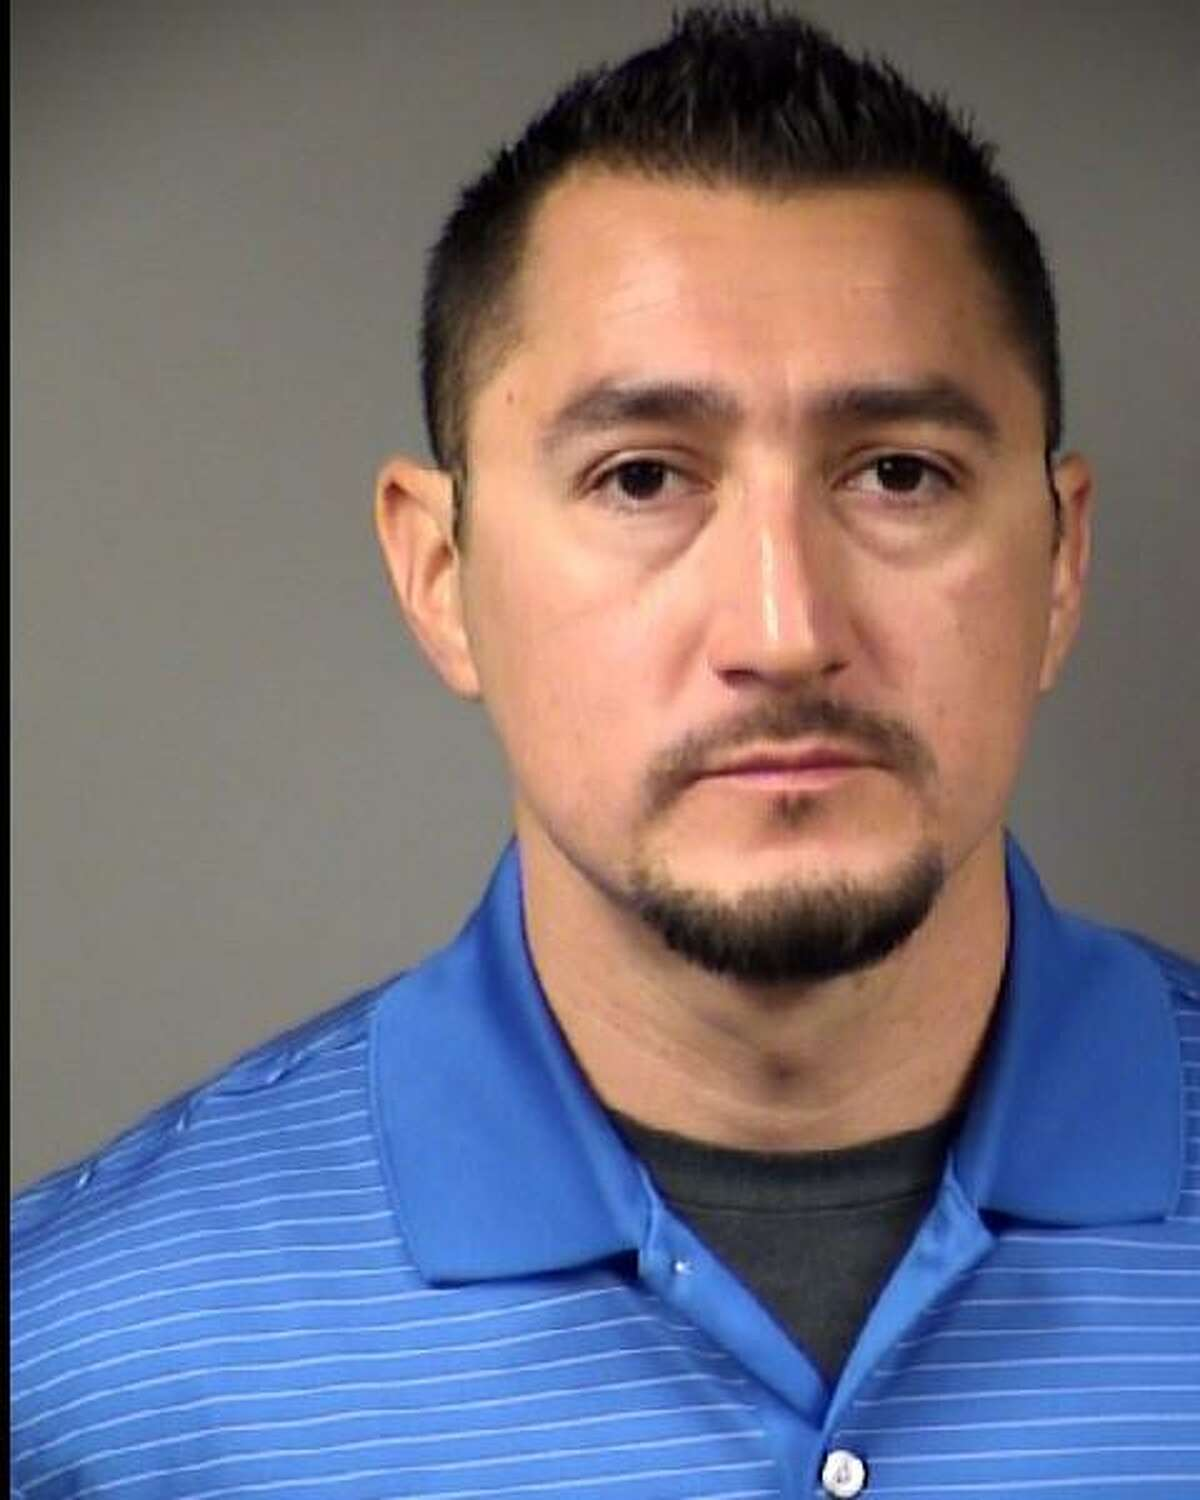 This is Richard Luis Amezquita, accused of murder in the fatal shooting of Kerry O'Toole on Nov. 7, 2015.